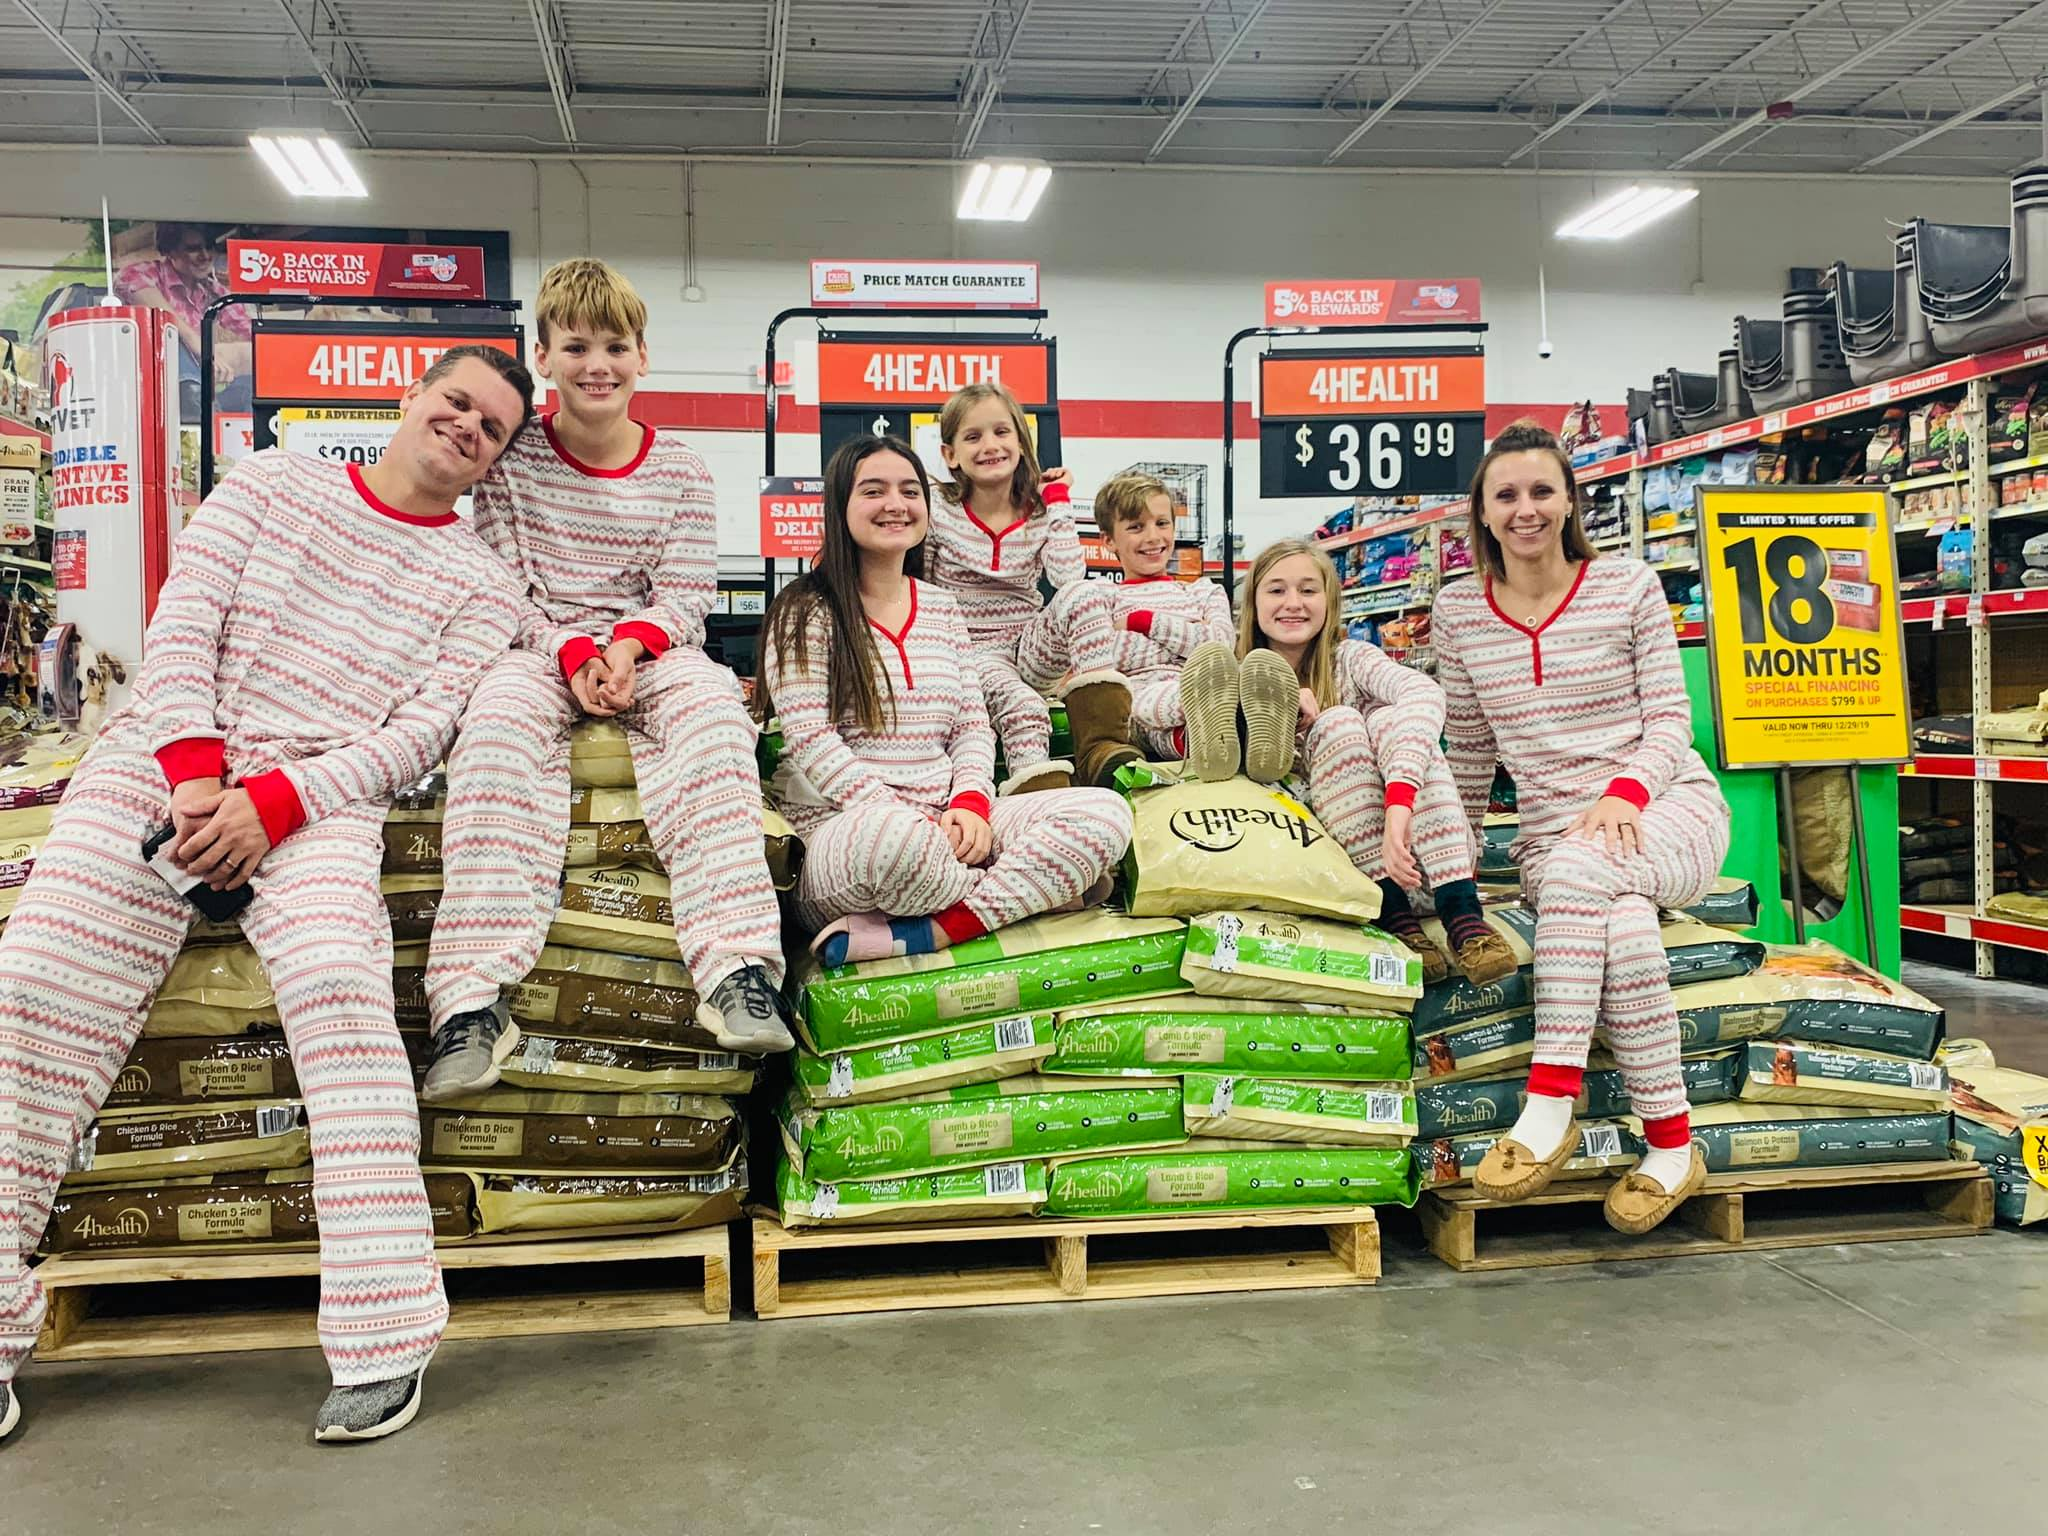 Family in matching pjs sitting on stacks of dog food bags